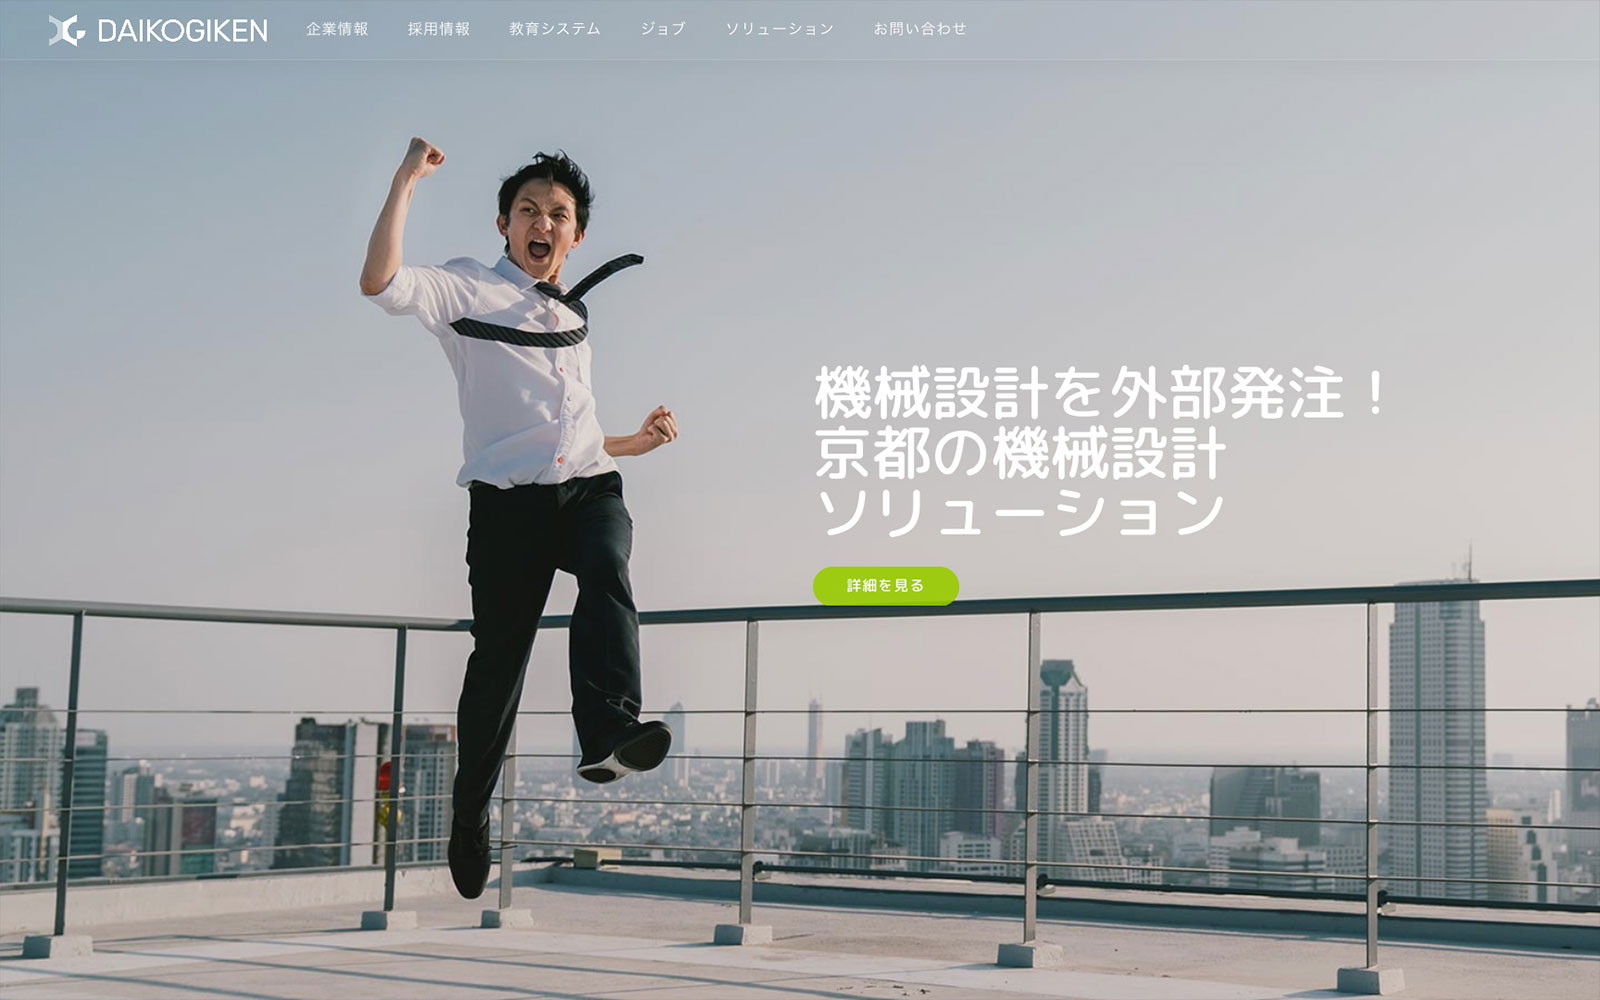 Daikogiken Website Design